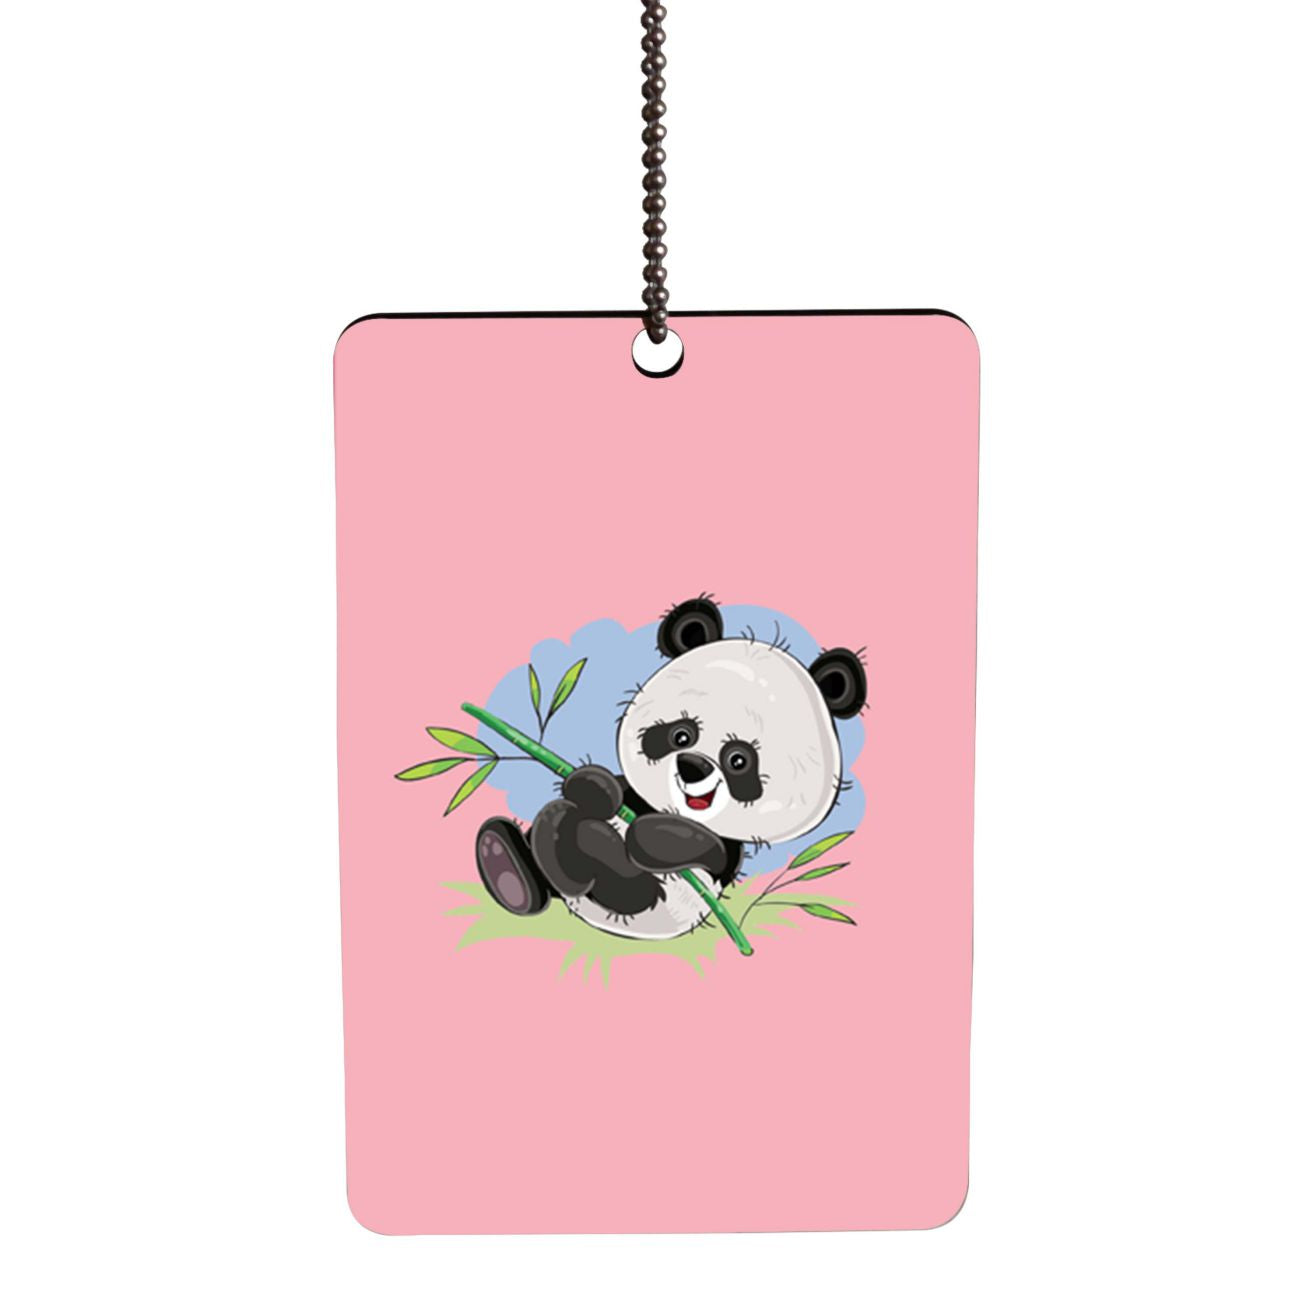 Cute Lovelu Panda Car Hanging